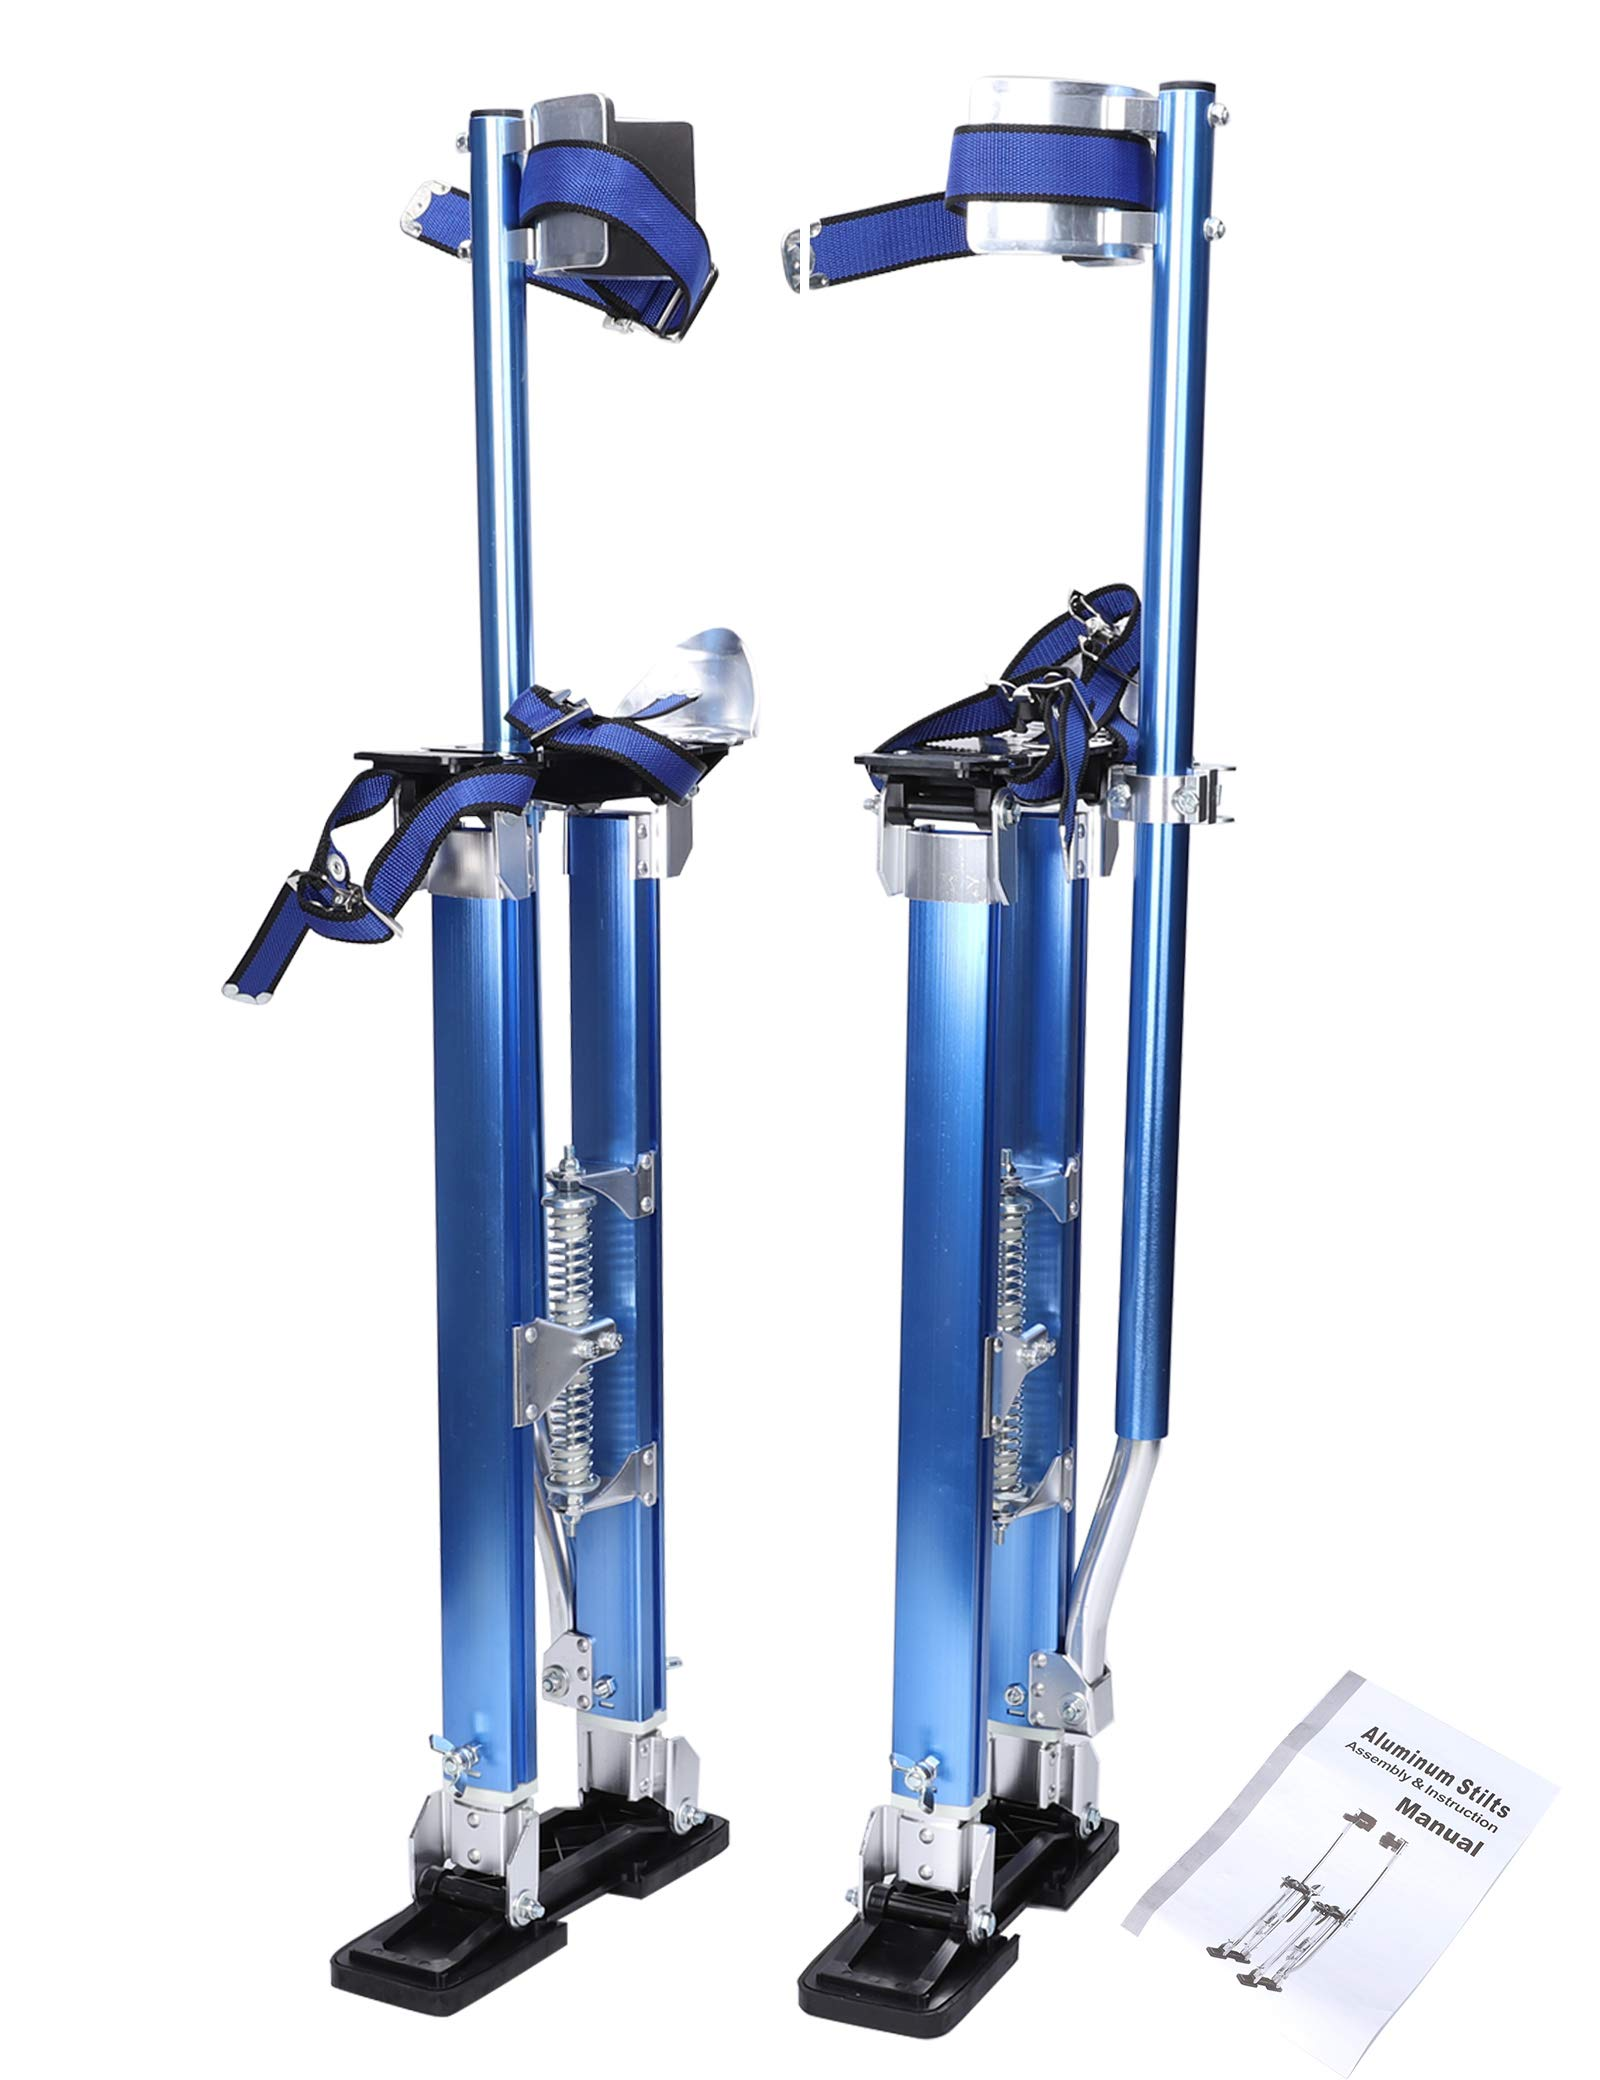 BLACKHORSE-RACING 24 inch -40 inch Professional Grade Adjustable Drywall Stilts Taping Paint Stilt Aluminum Tool Stilt for Painting Painter Taping Blue